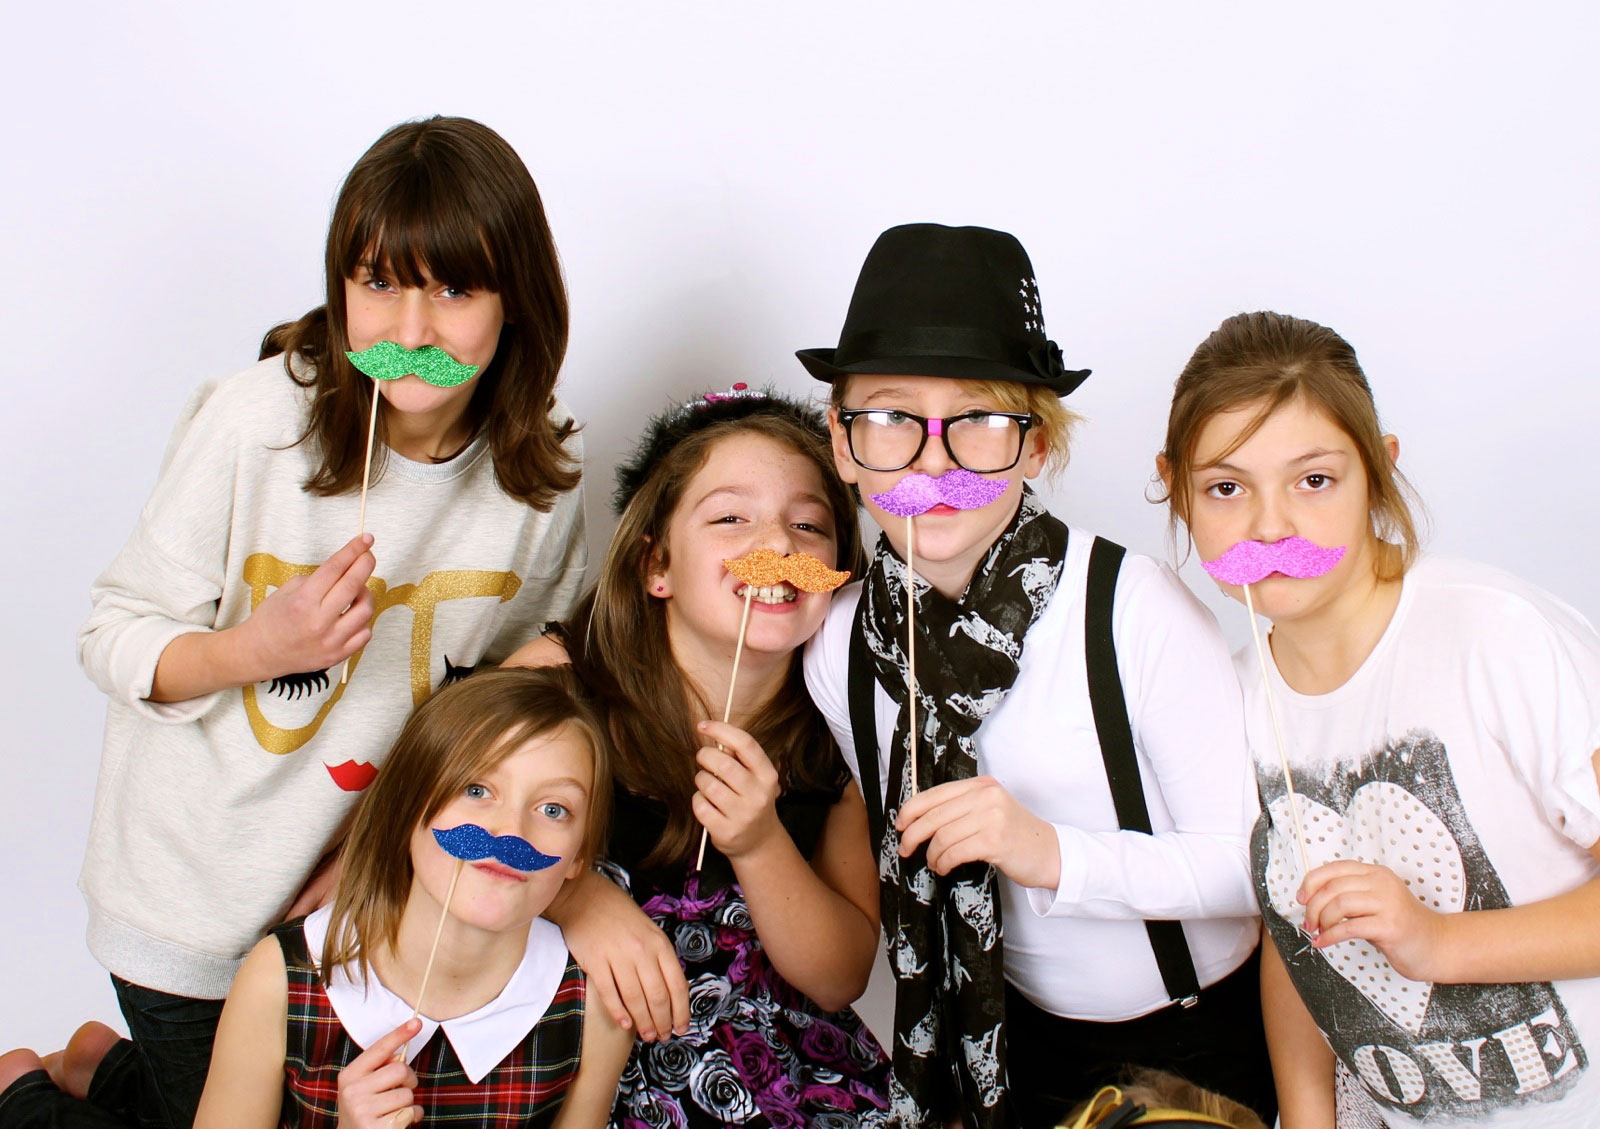 photo-booth-ems-attractions-8.jpg